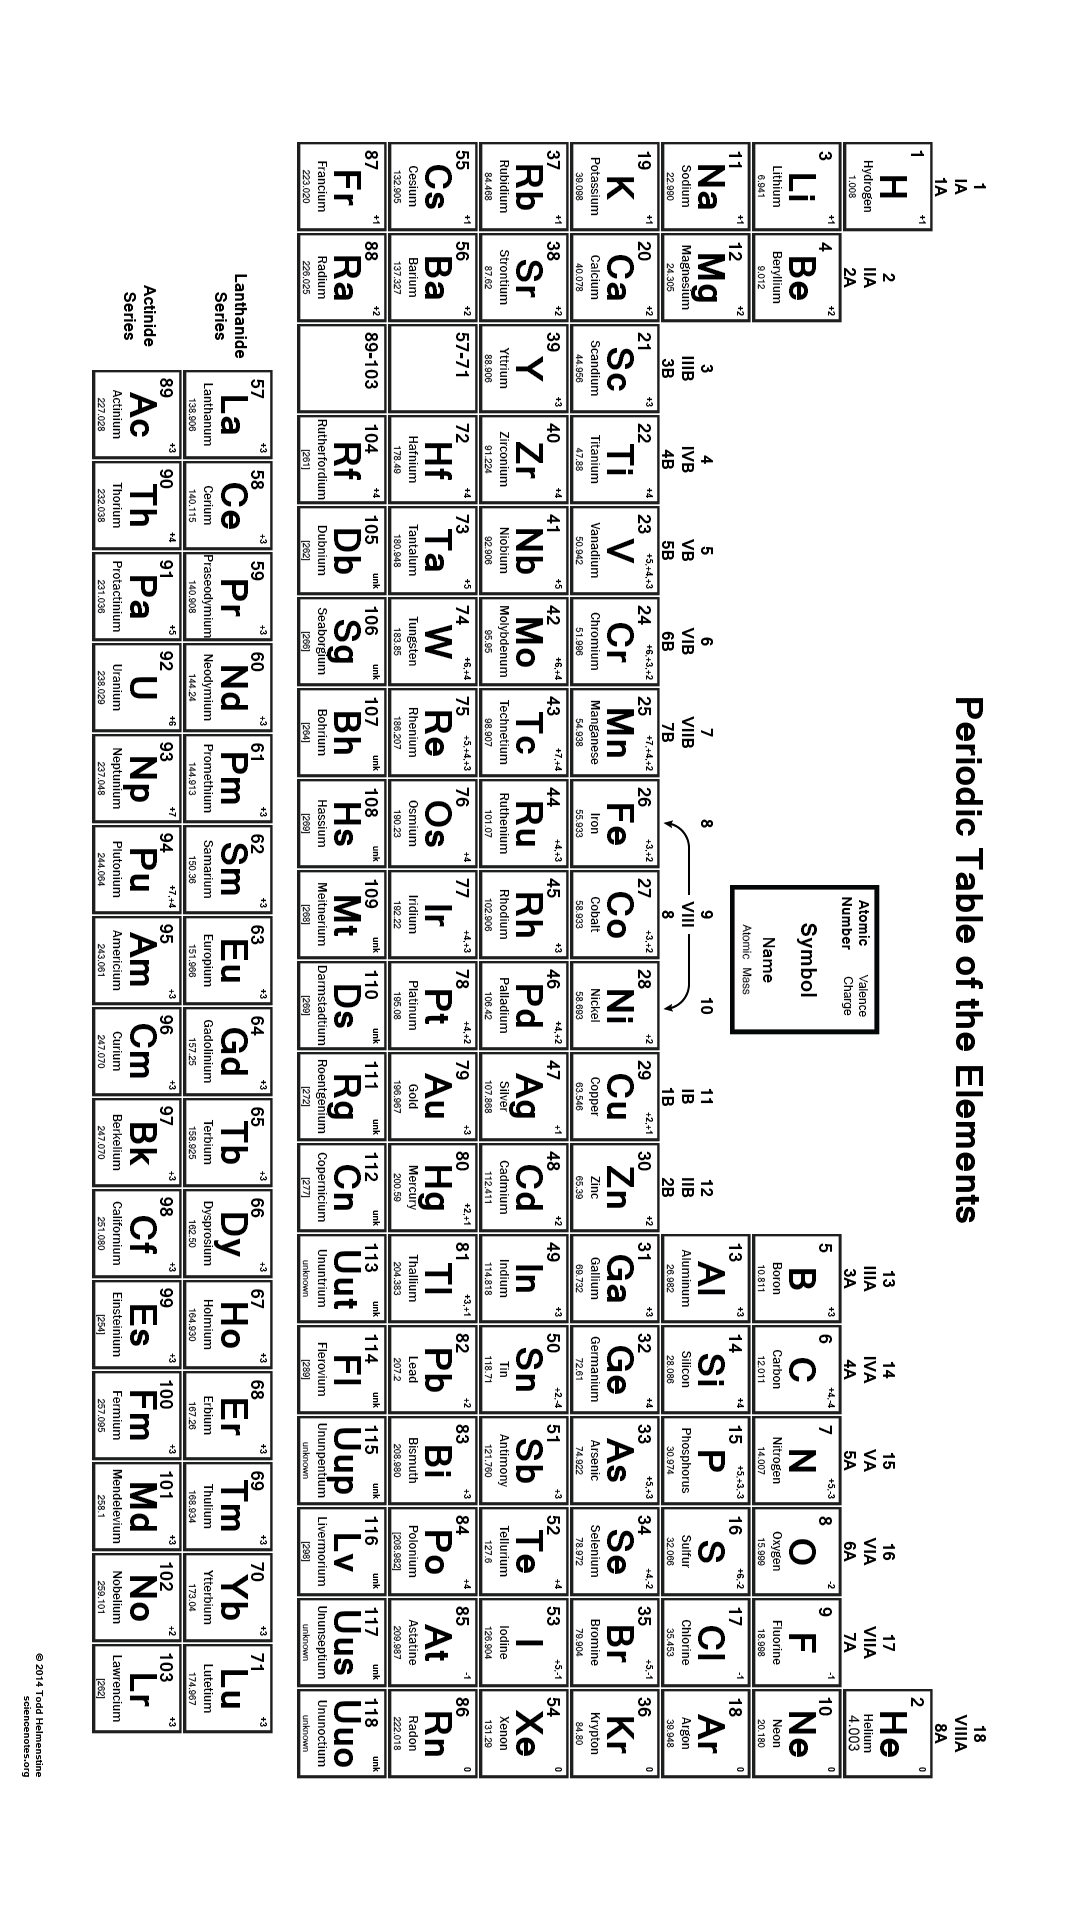 periodic table elements lesson worksheet atomic mass 6th - Periodic Table Worksheets For 6th Grade